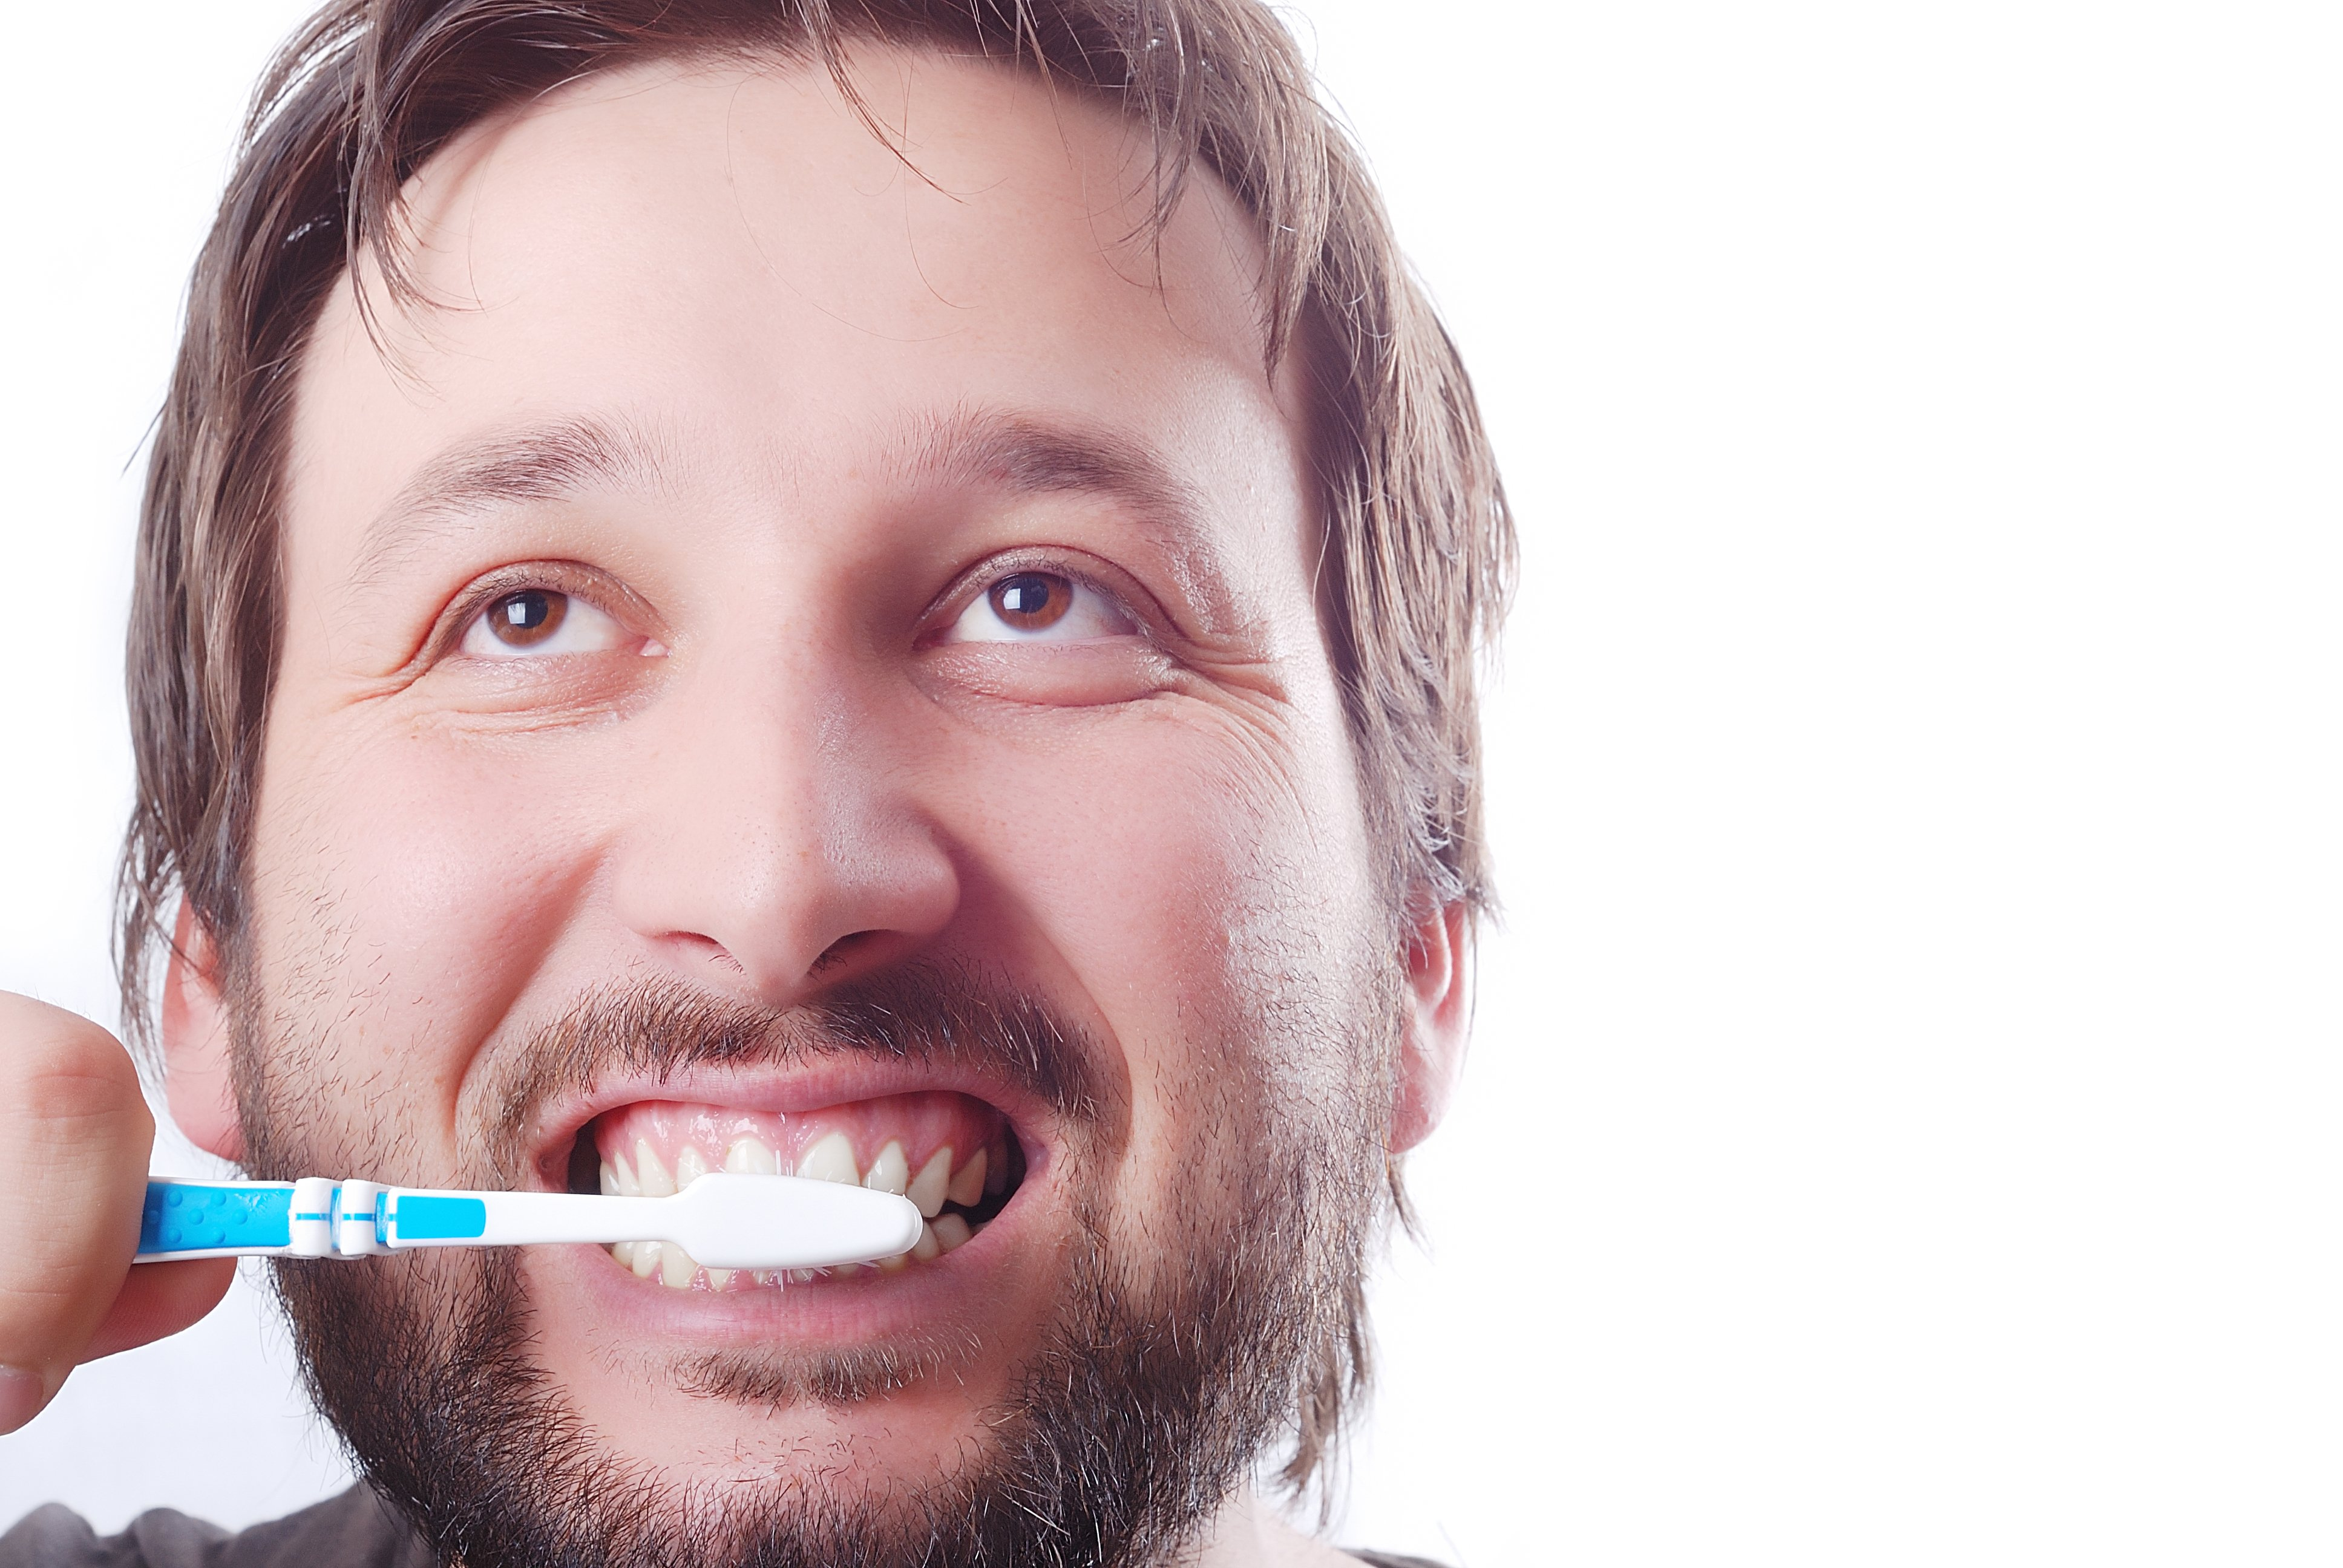 Ask The Dentist: What Kind Of Toothbrush Is Best For My Teeth?